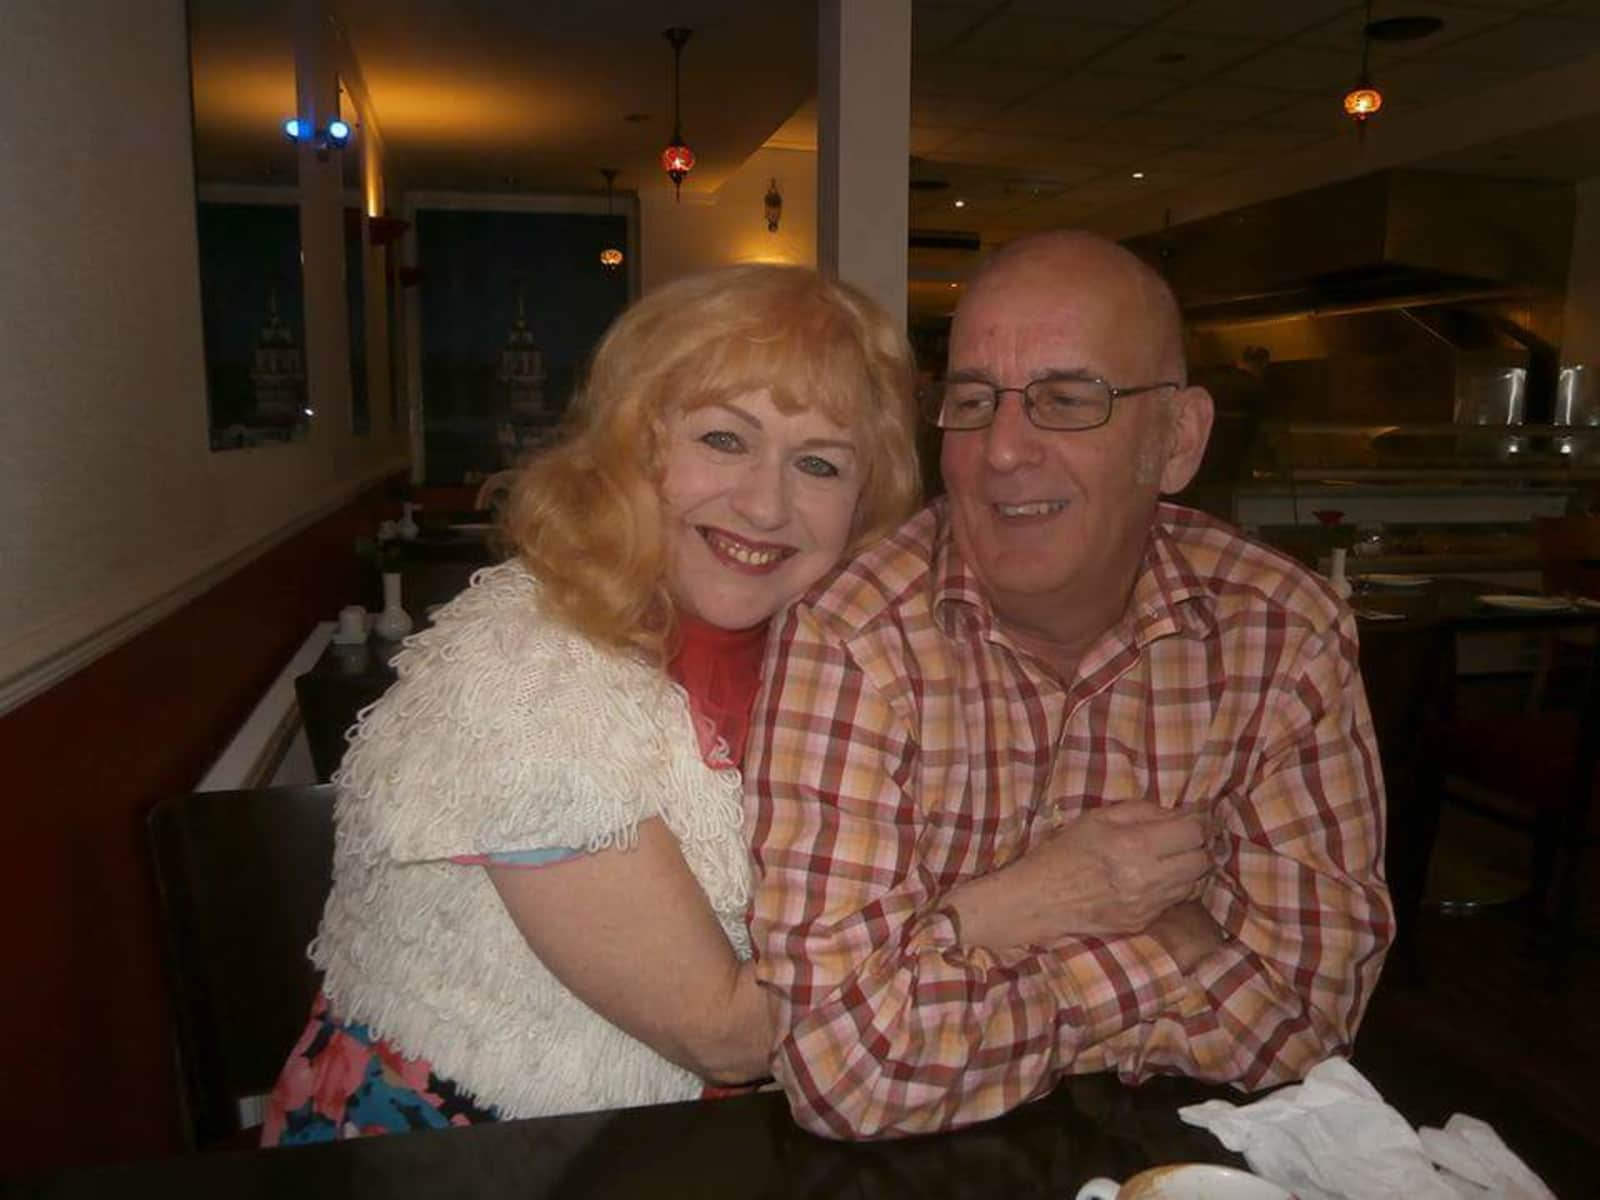 Norman & Yvonne from Westcliff-on-Sea, United Kingdom